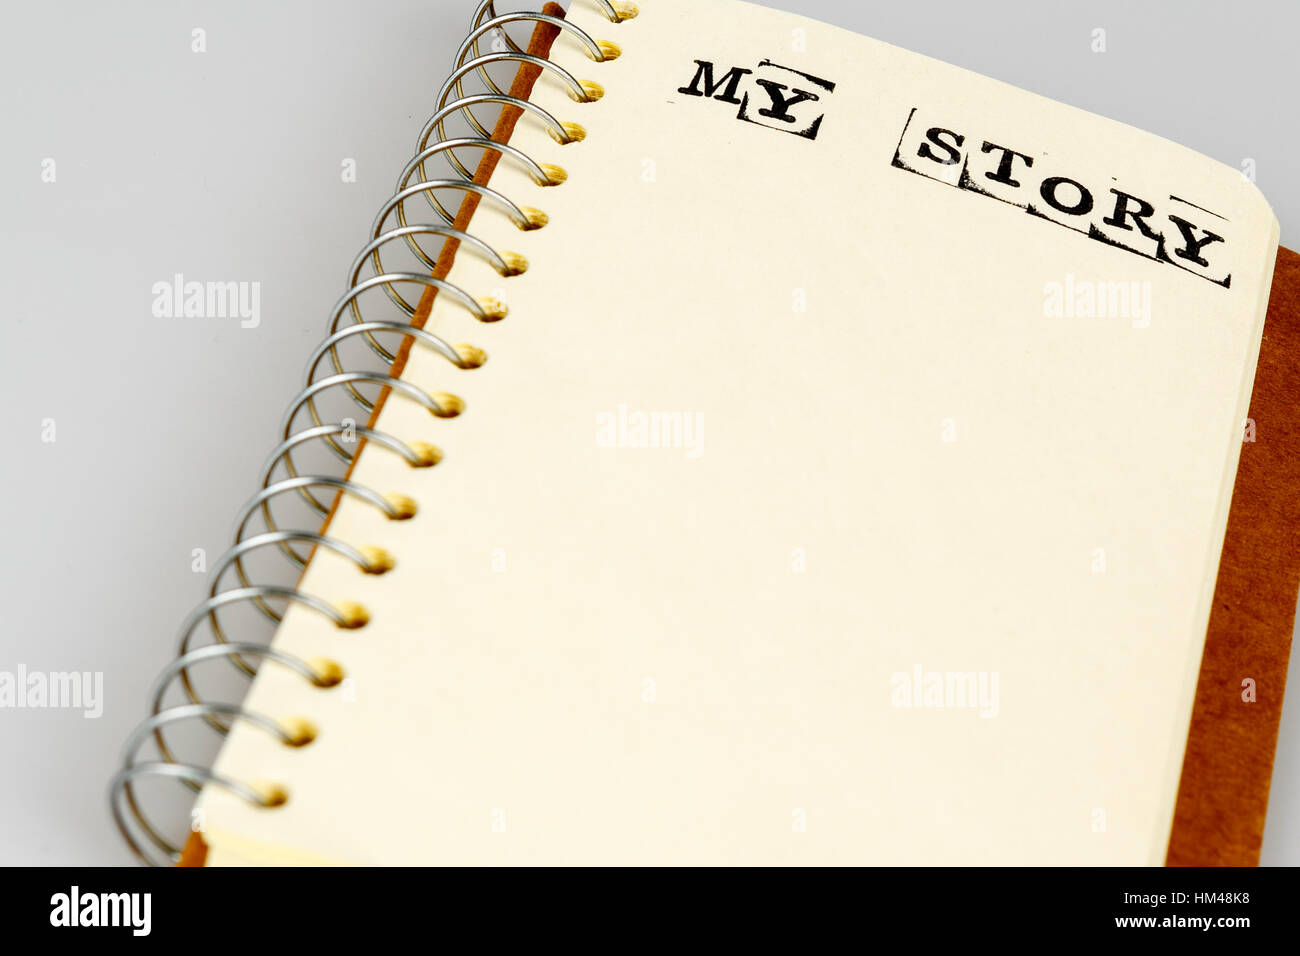 My story book on the white, Diary with text - Stock Image